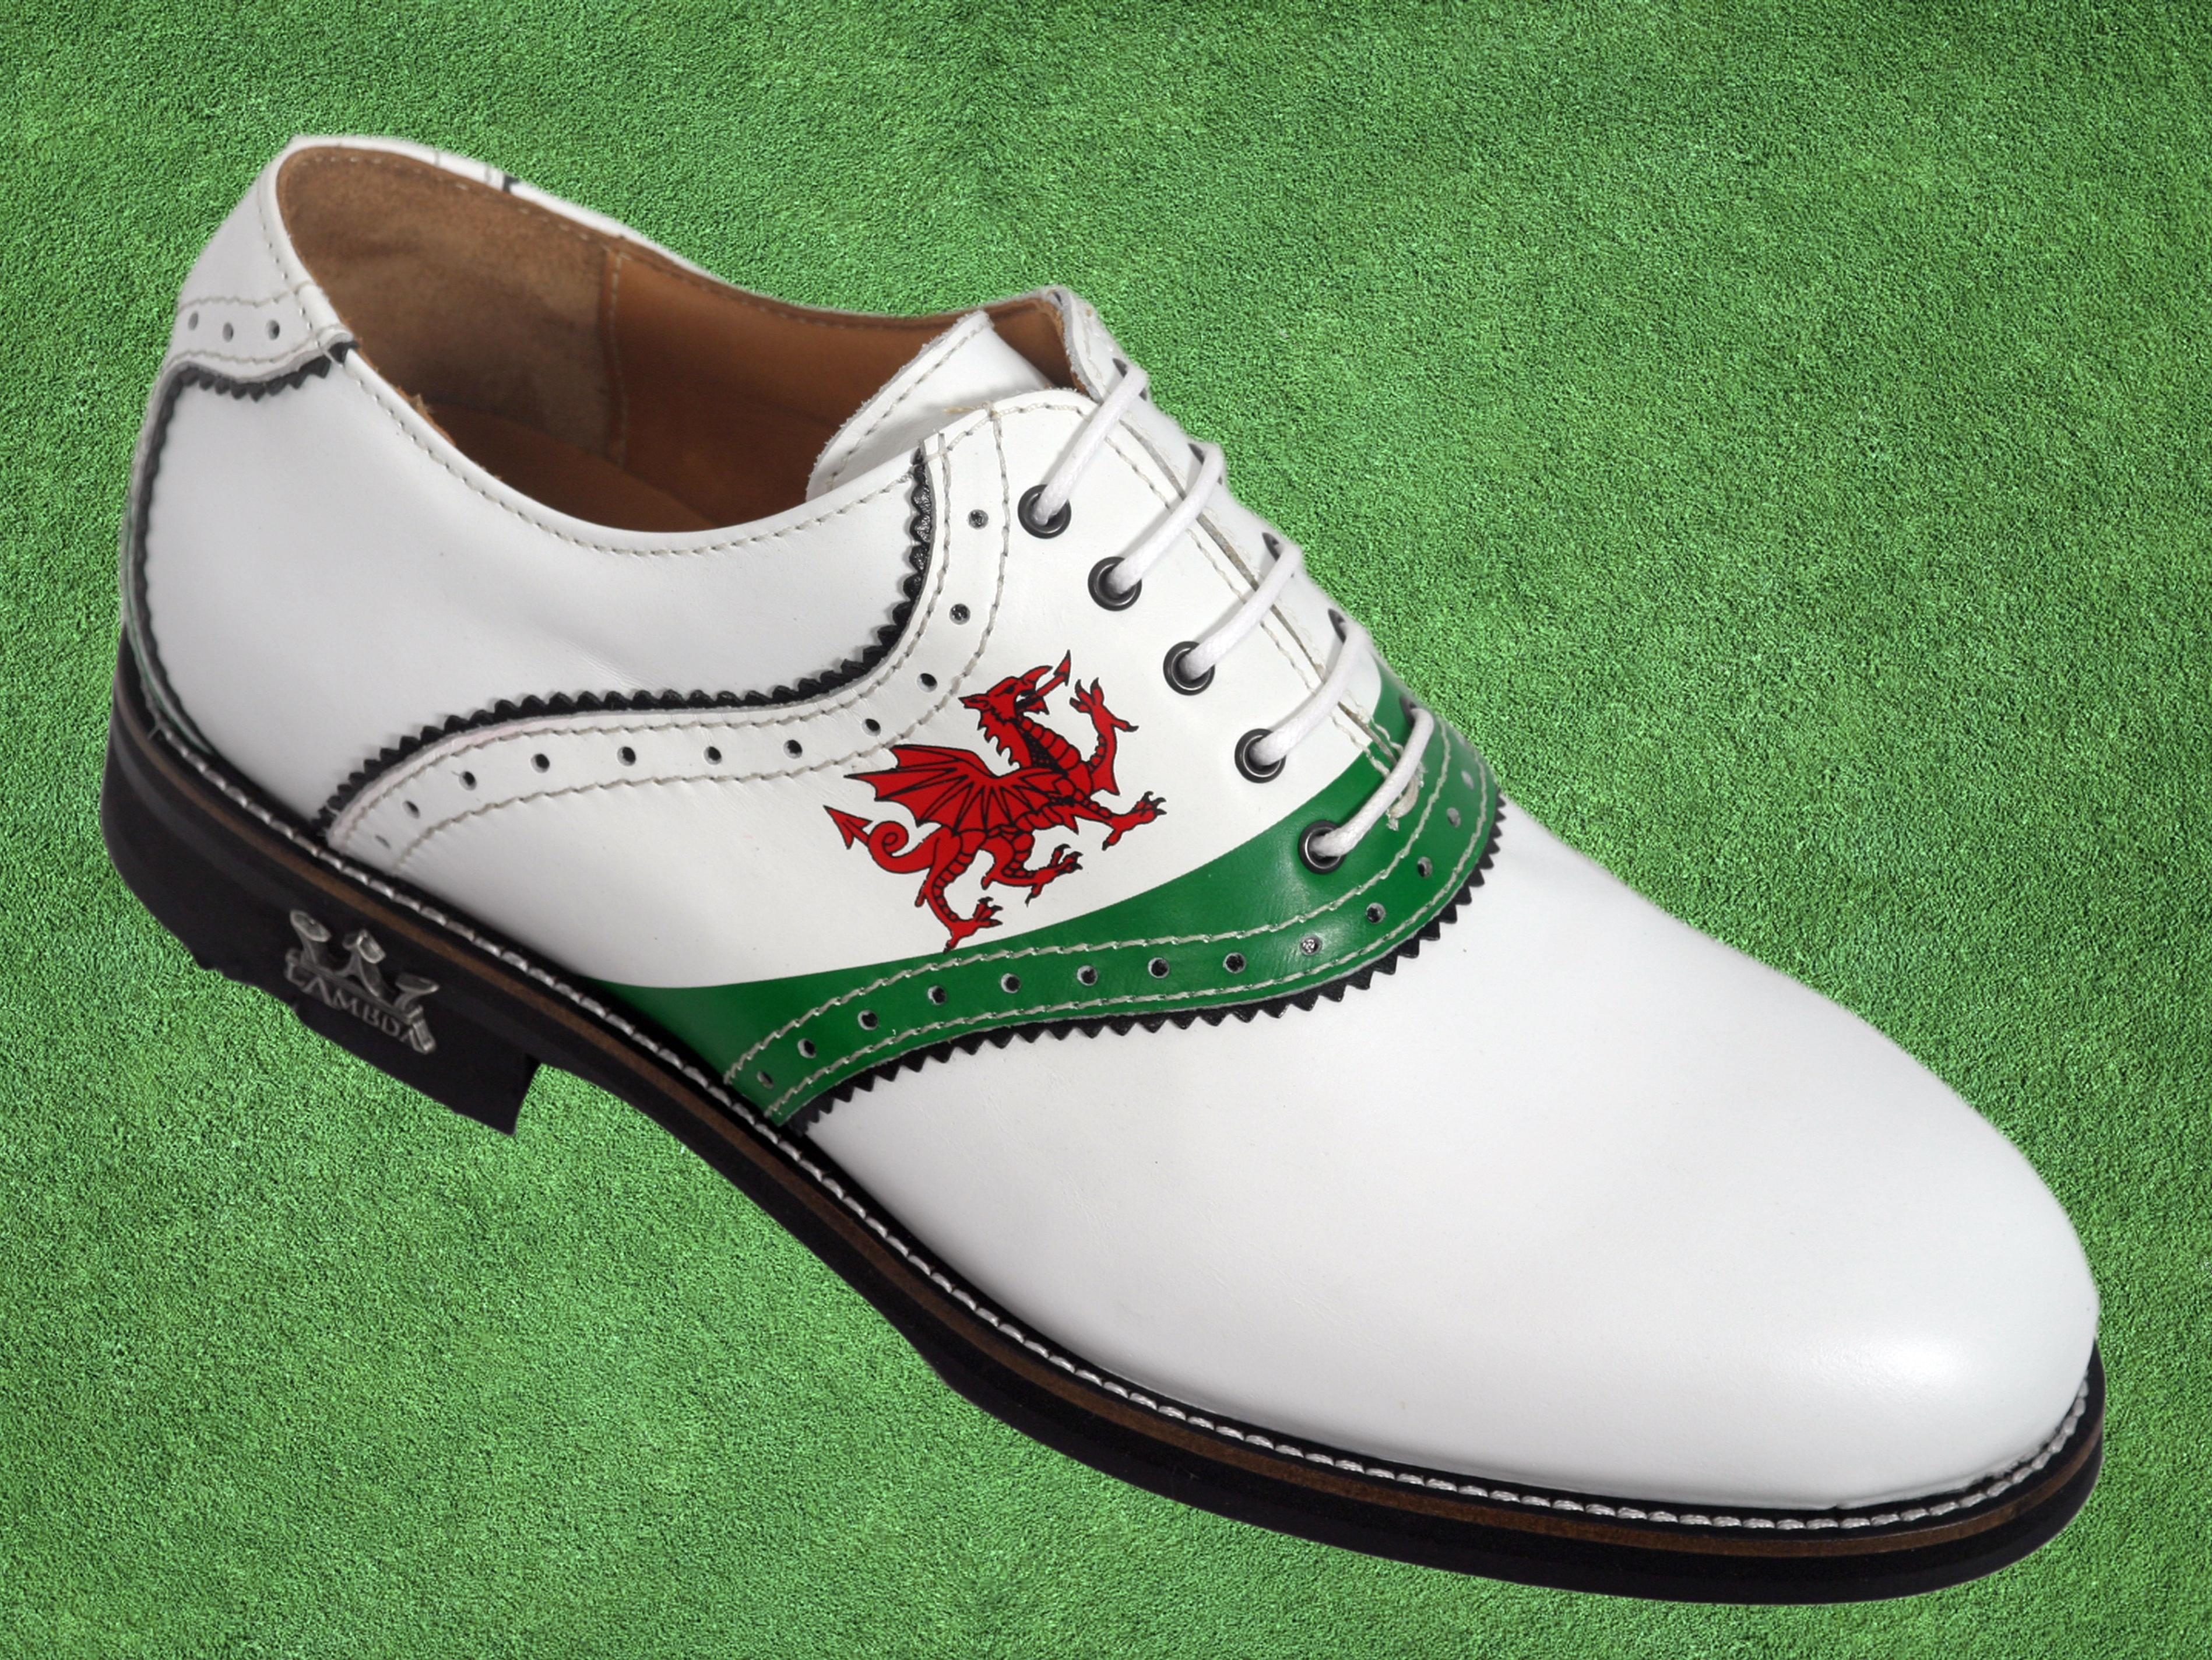 Where Can I Buy Golf Shoes In The Philippines